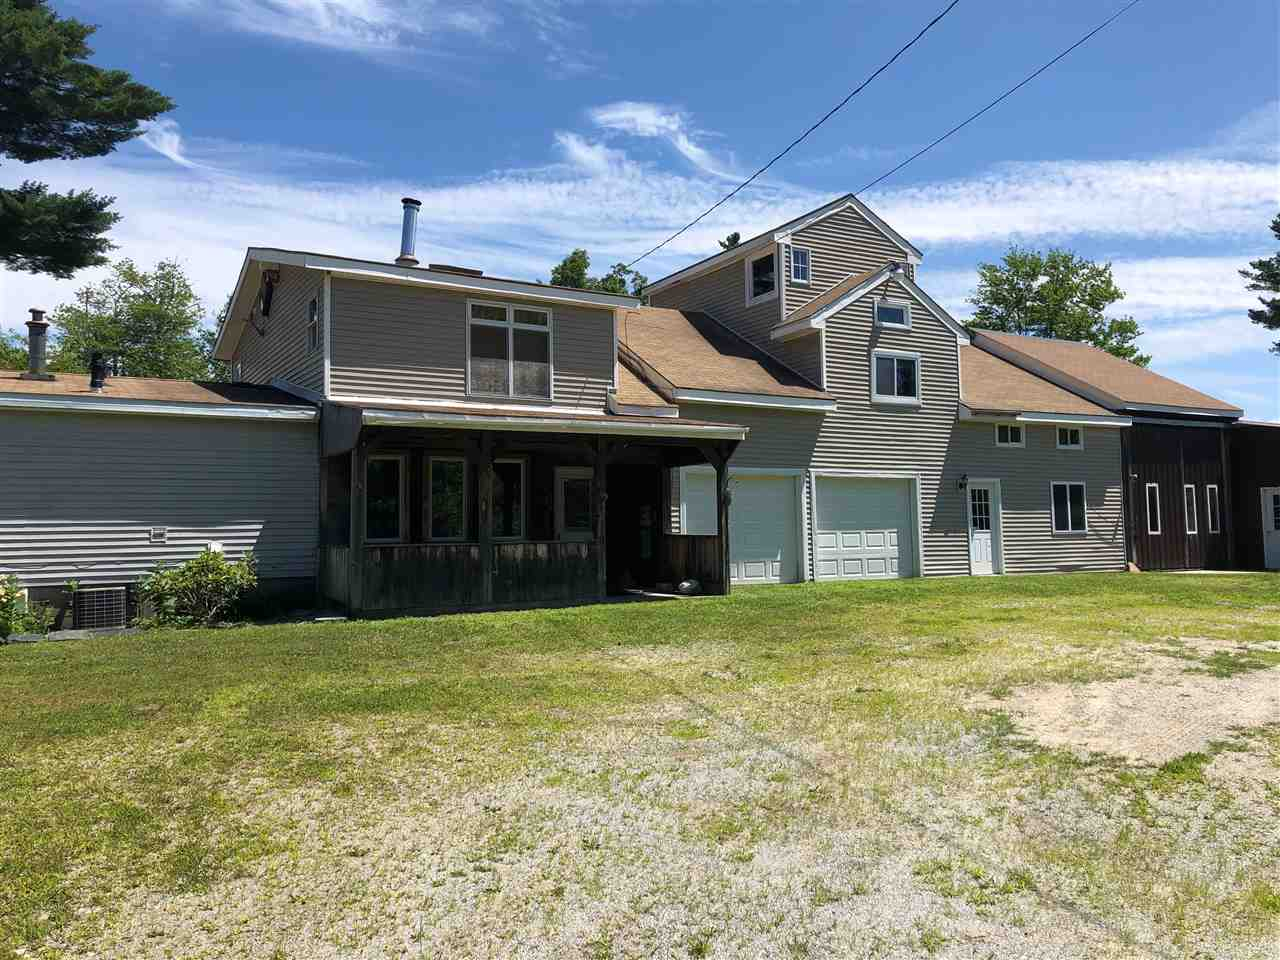 MLS 4761746: 118 Turtle Rock Road, Stoddard NH